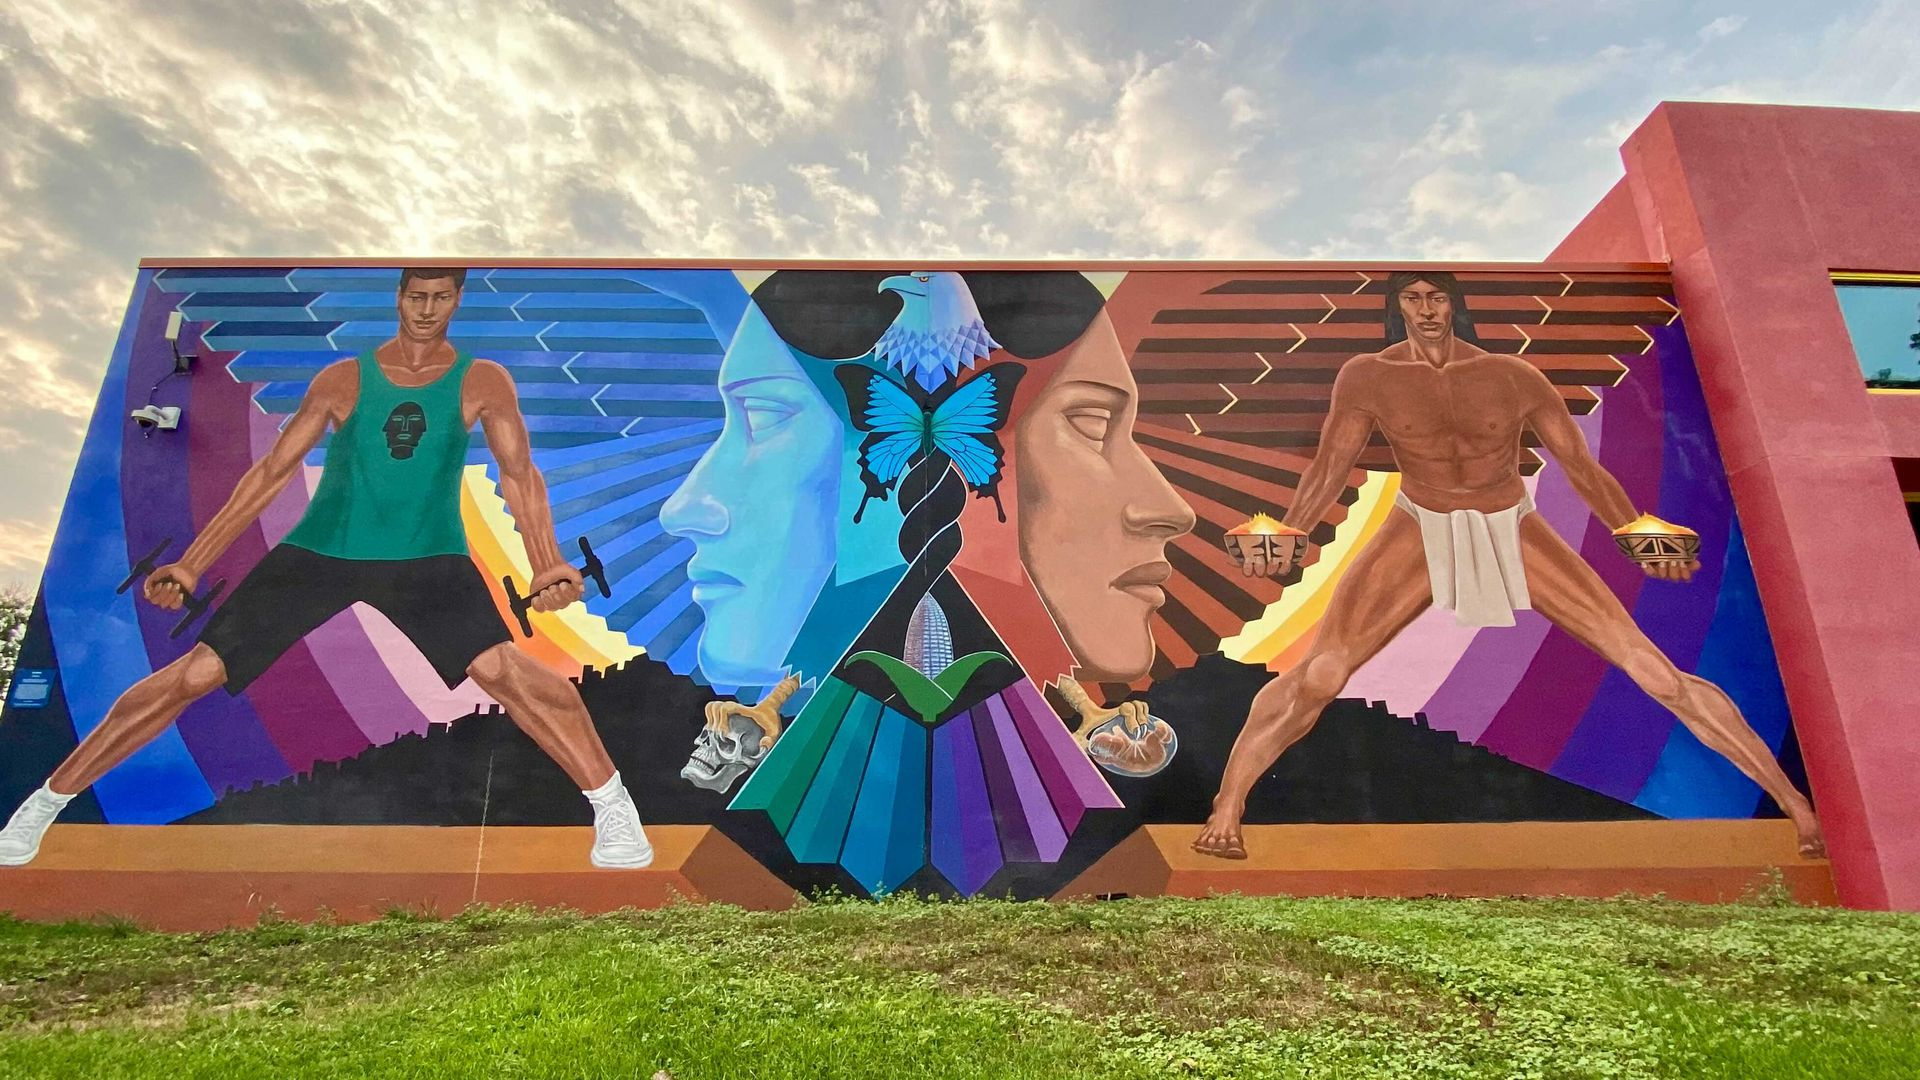 A photo of a large mural painted on a wall at the La Alma Recreation Center.